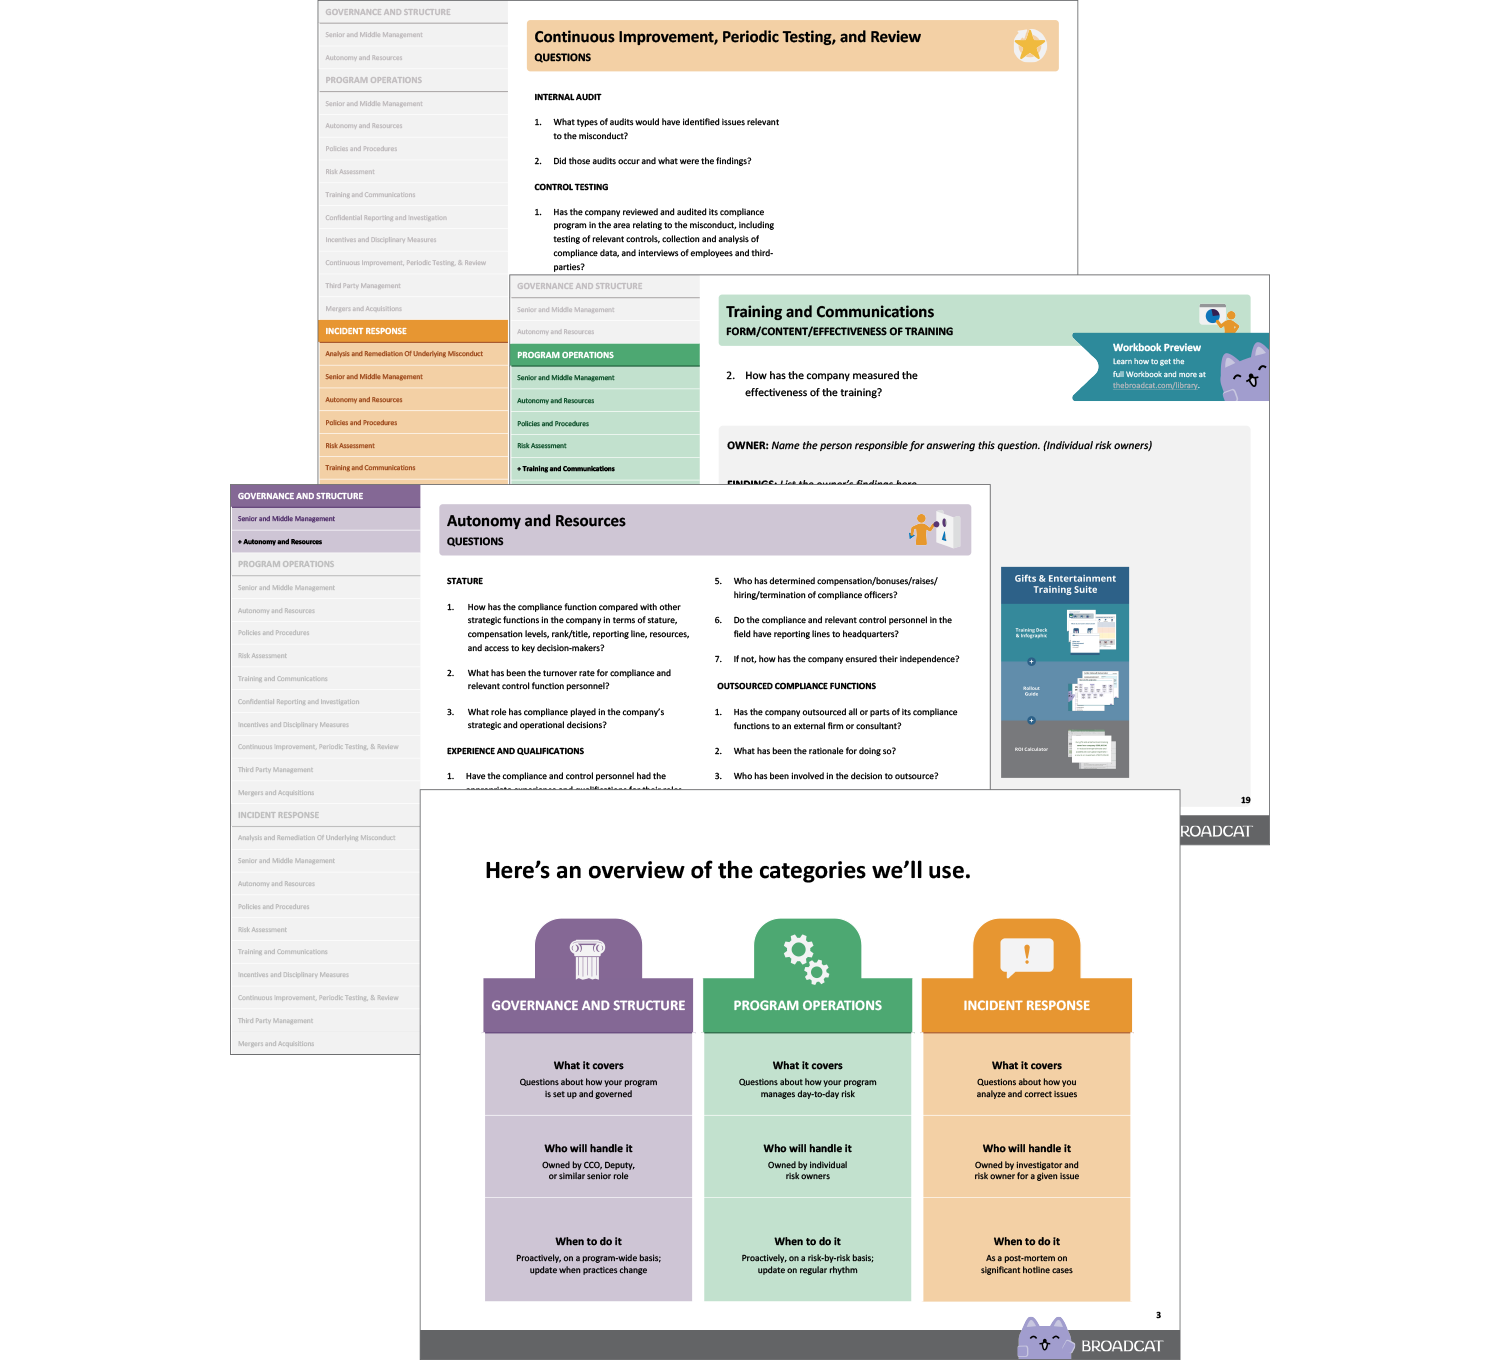 Branded, free version of Broadcat's roadmap to the Department of Justice's Evaluation of Corporate Compliance Programs